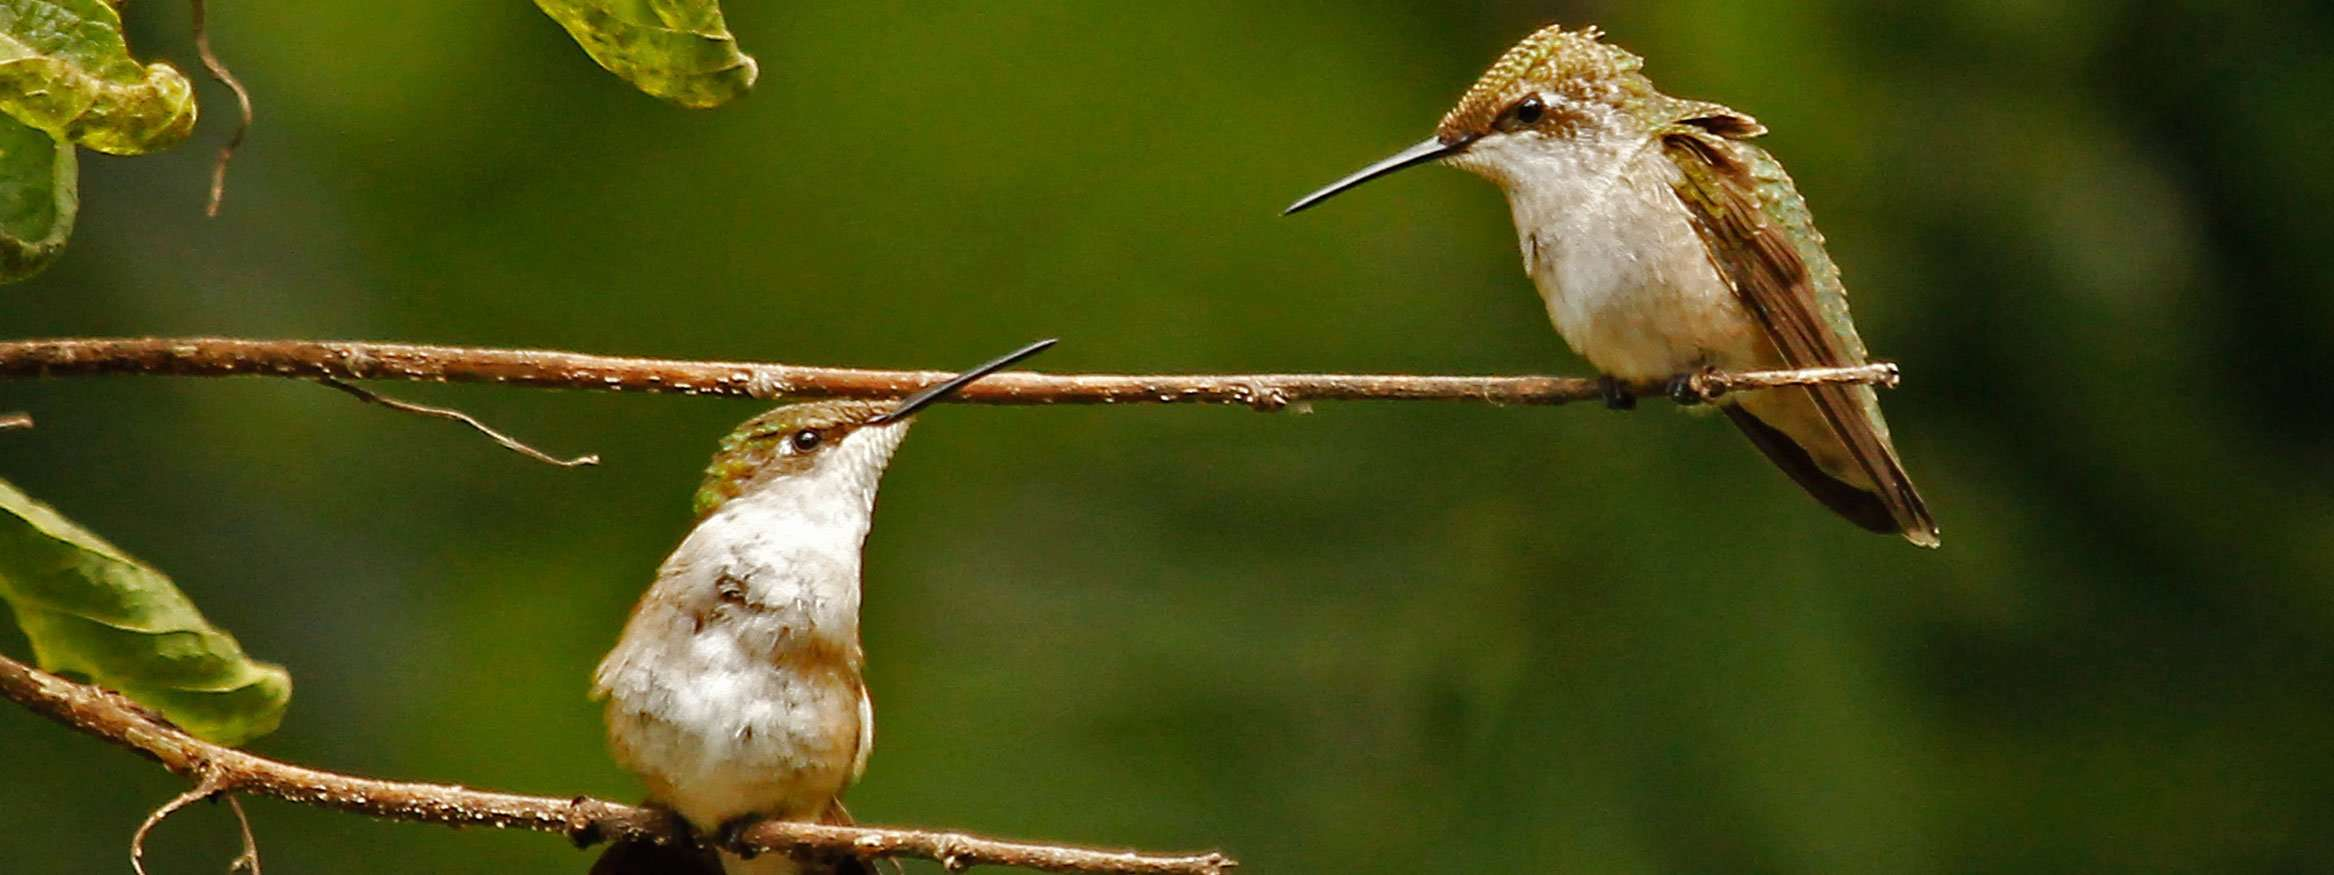 Hummingbird Siblings 'Talk' Together photo by Gail E Rowley Ozark Stream Photography